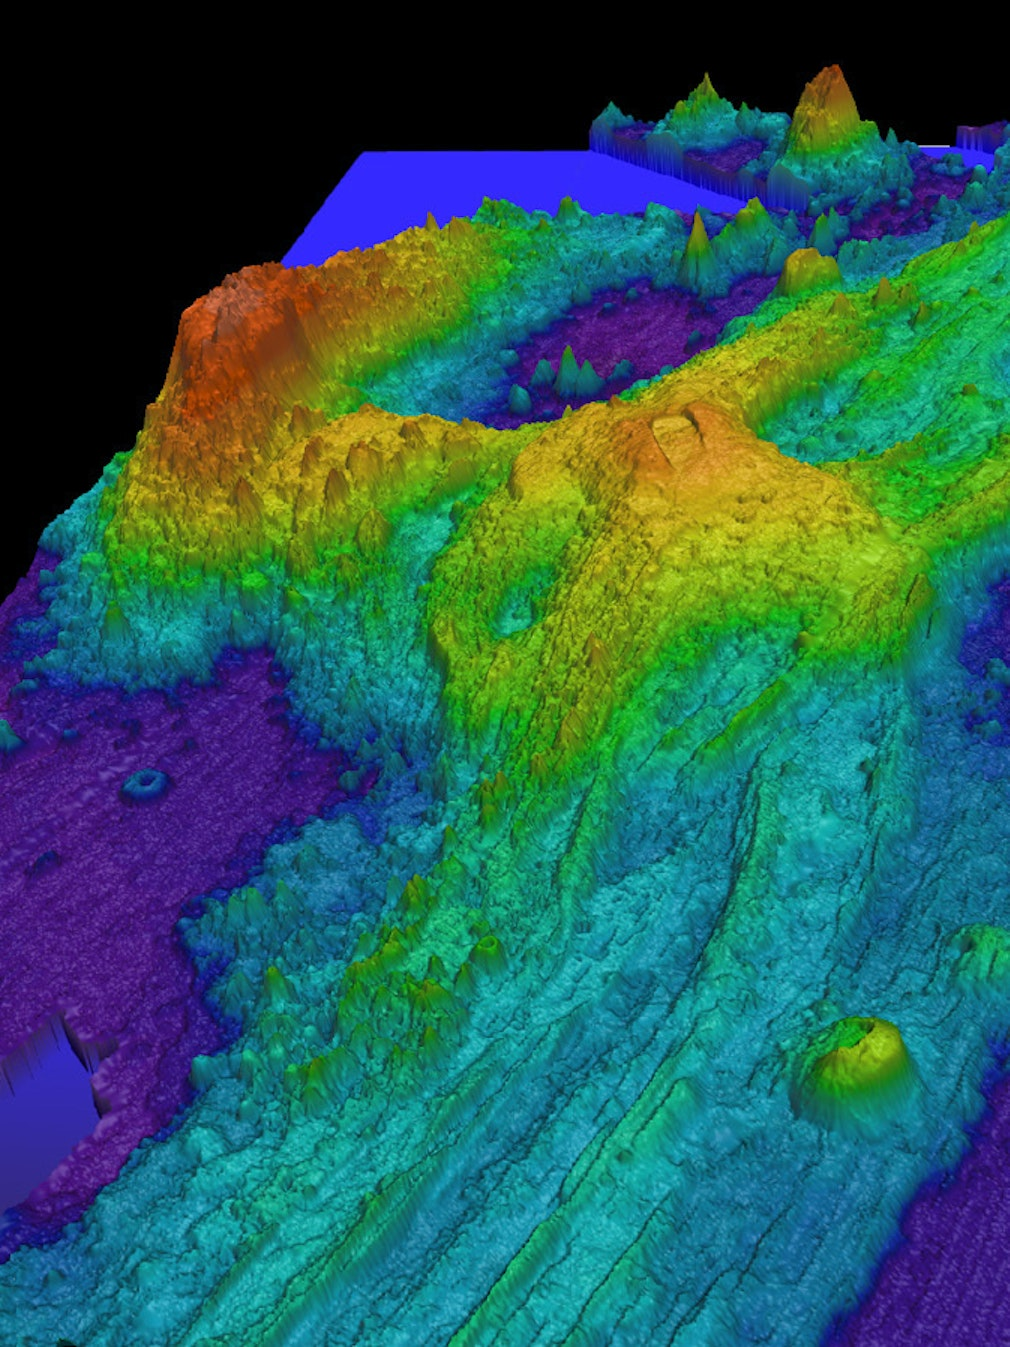 Exaggerated swatch bathymetry of Axial Seamount.